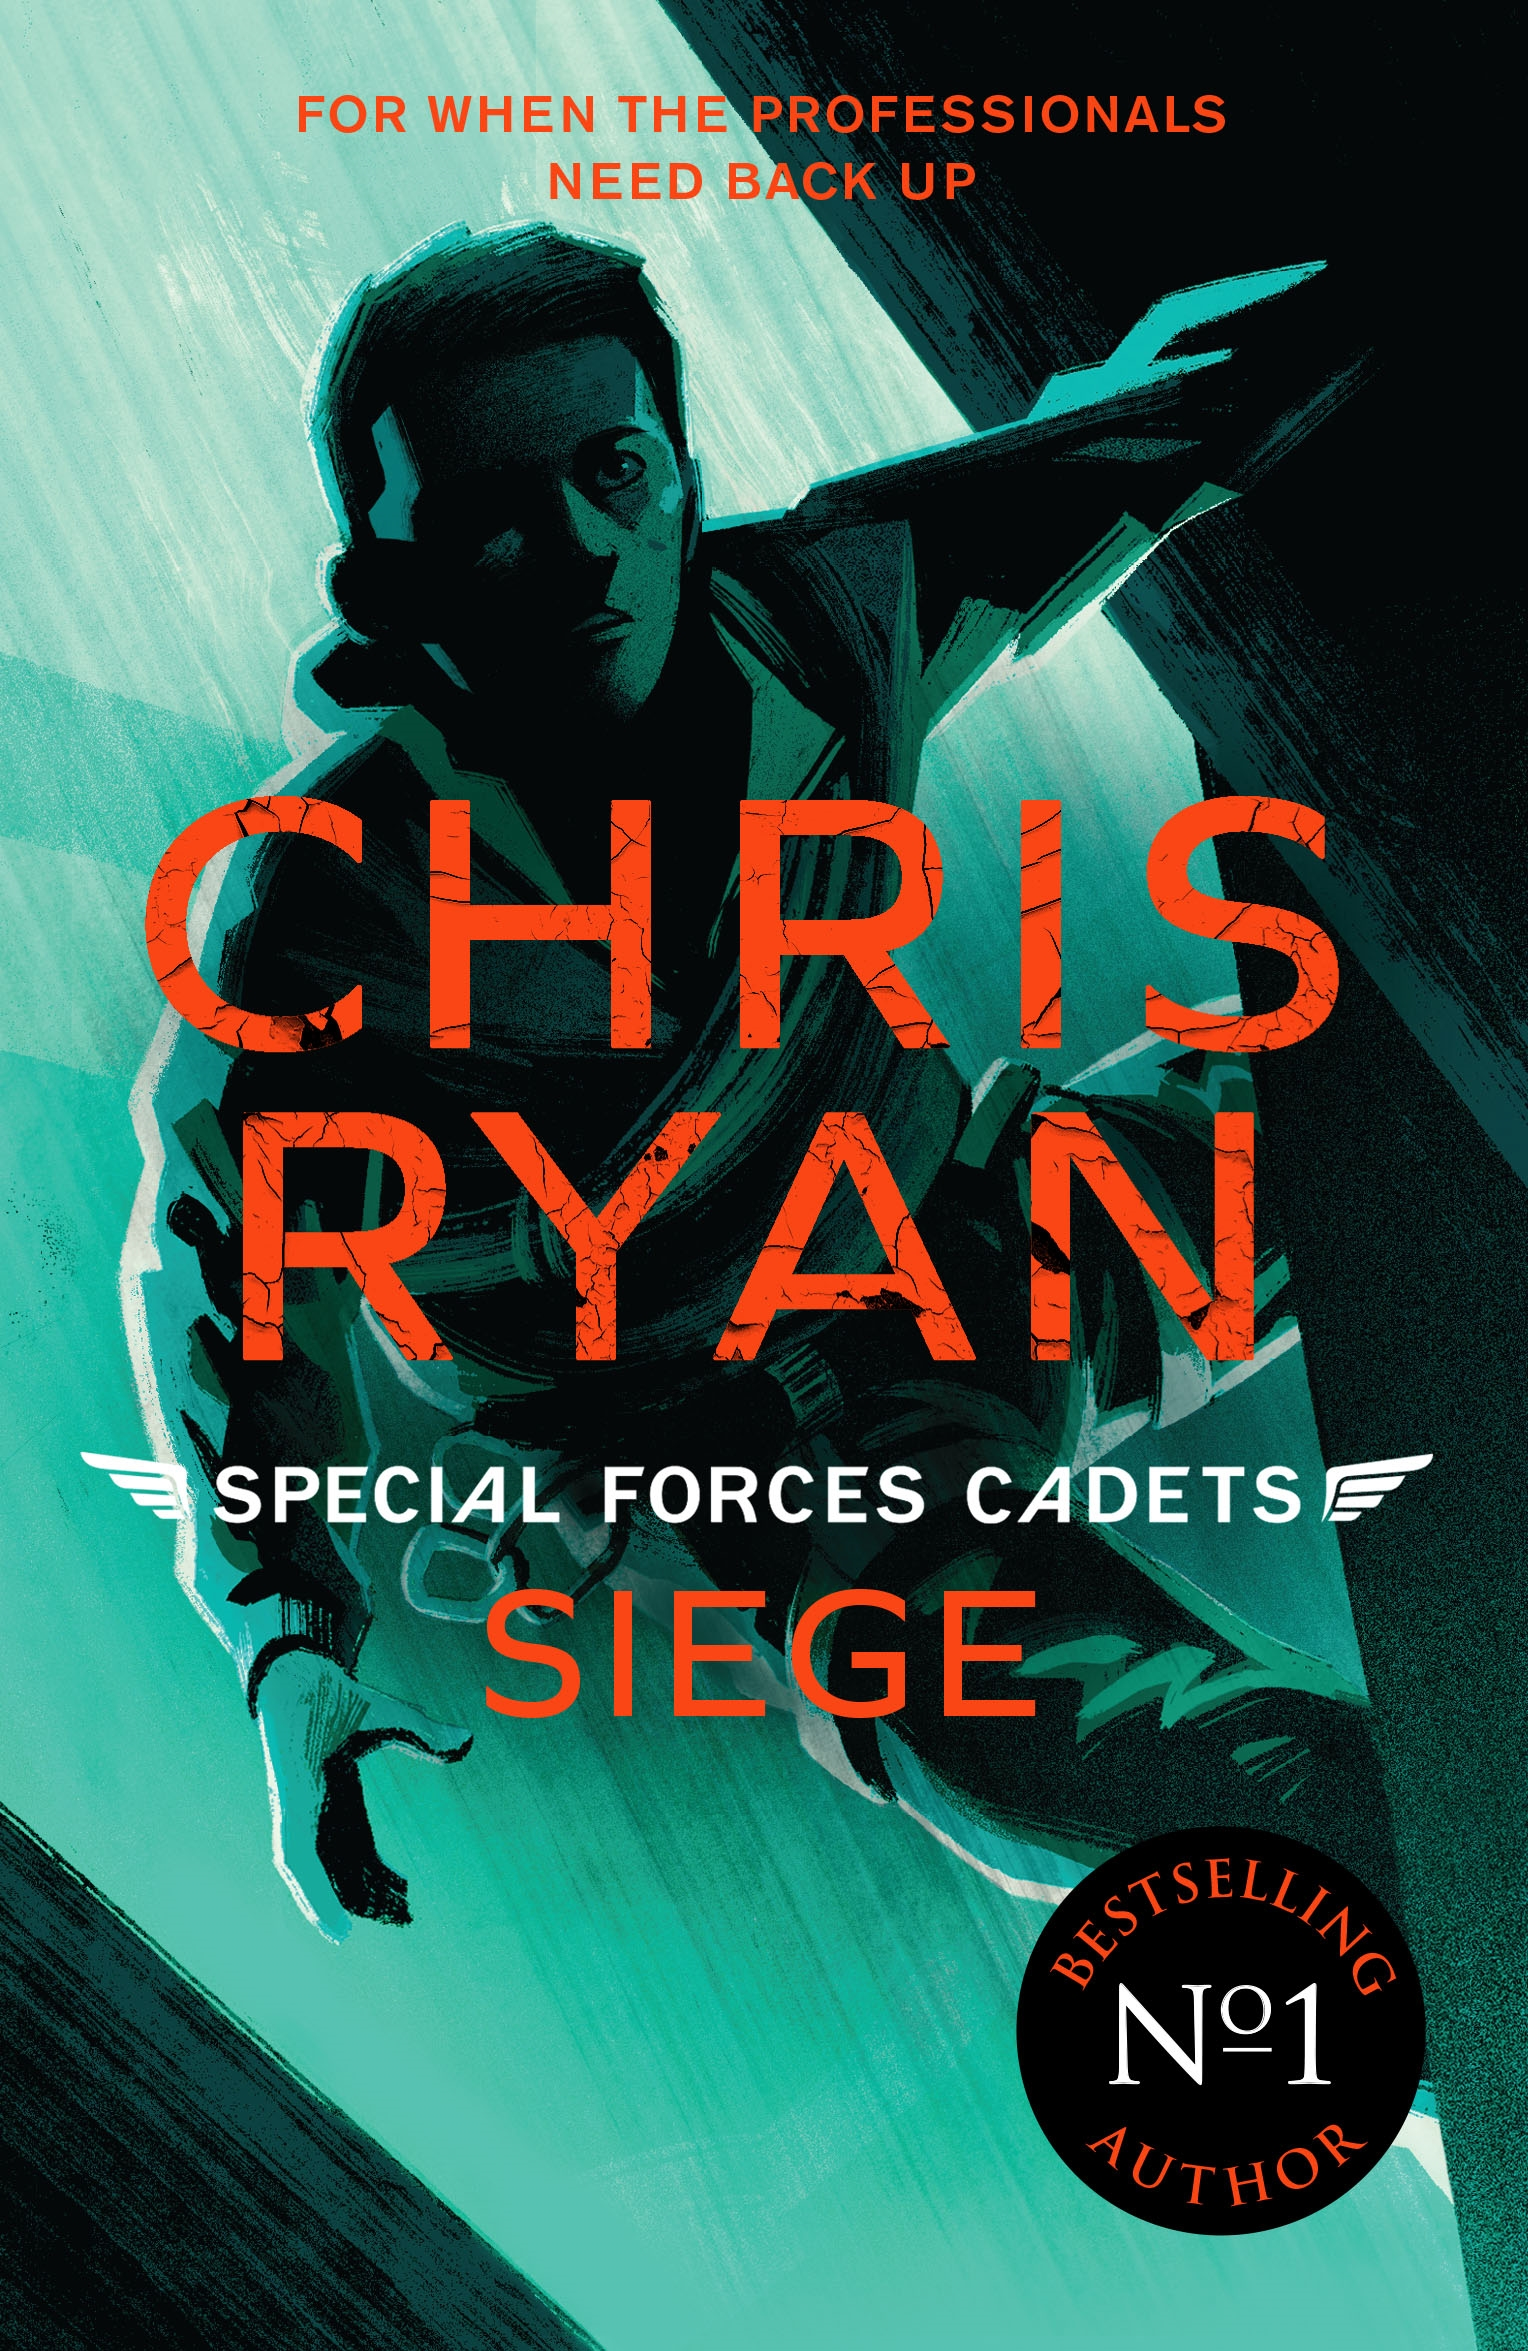 Special Forces Cadets 1: Siege by Chris Ryan